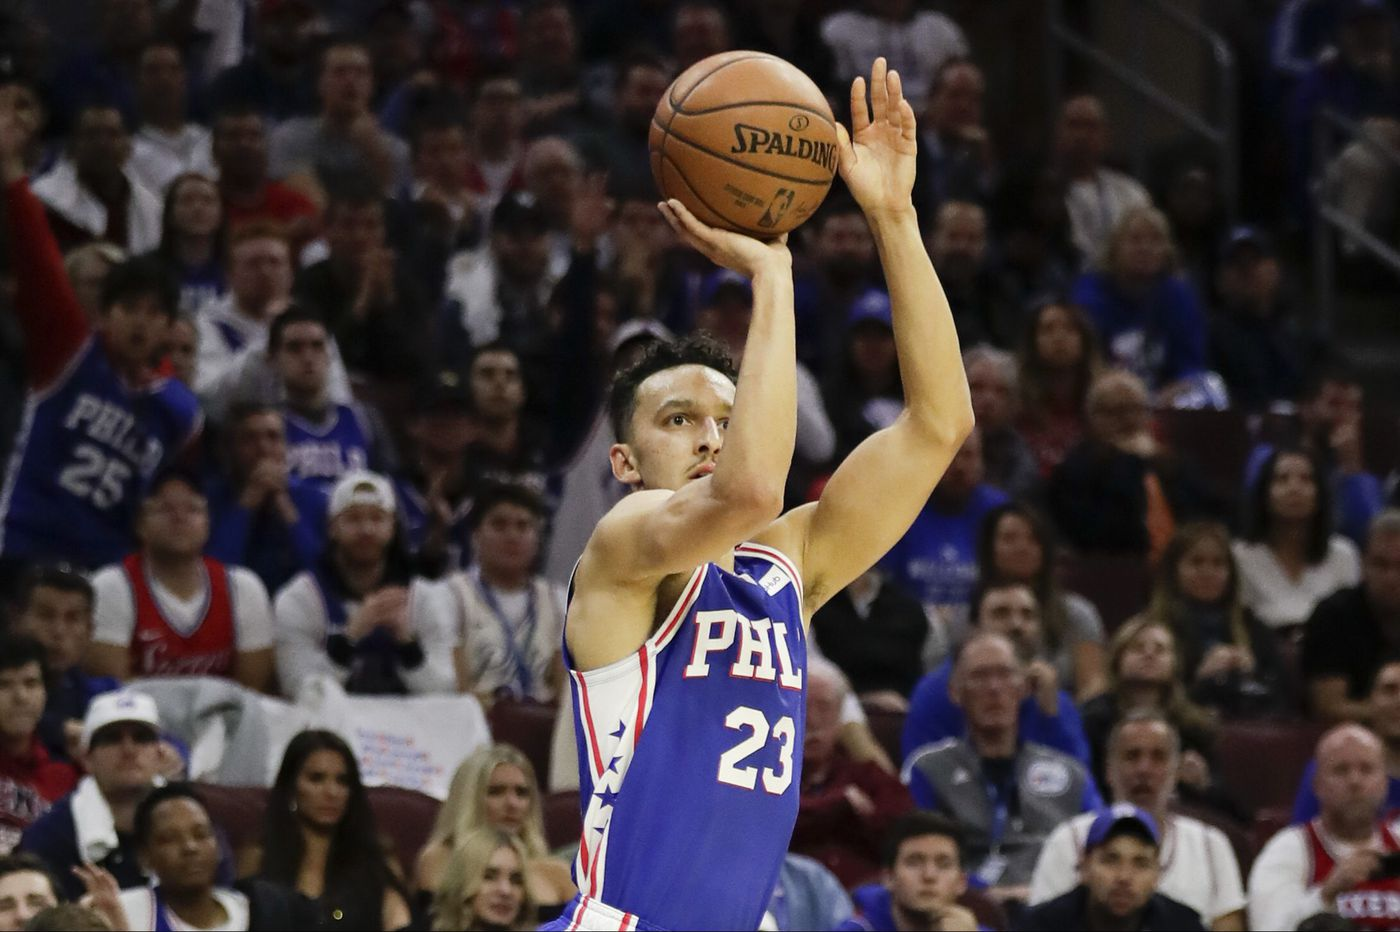 Sixers' rookie Landry Shamet showing promise with shooting touch